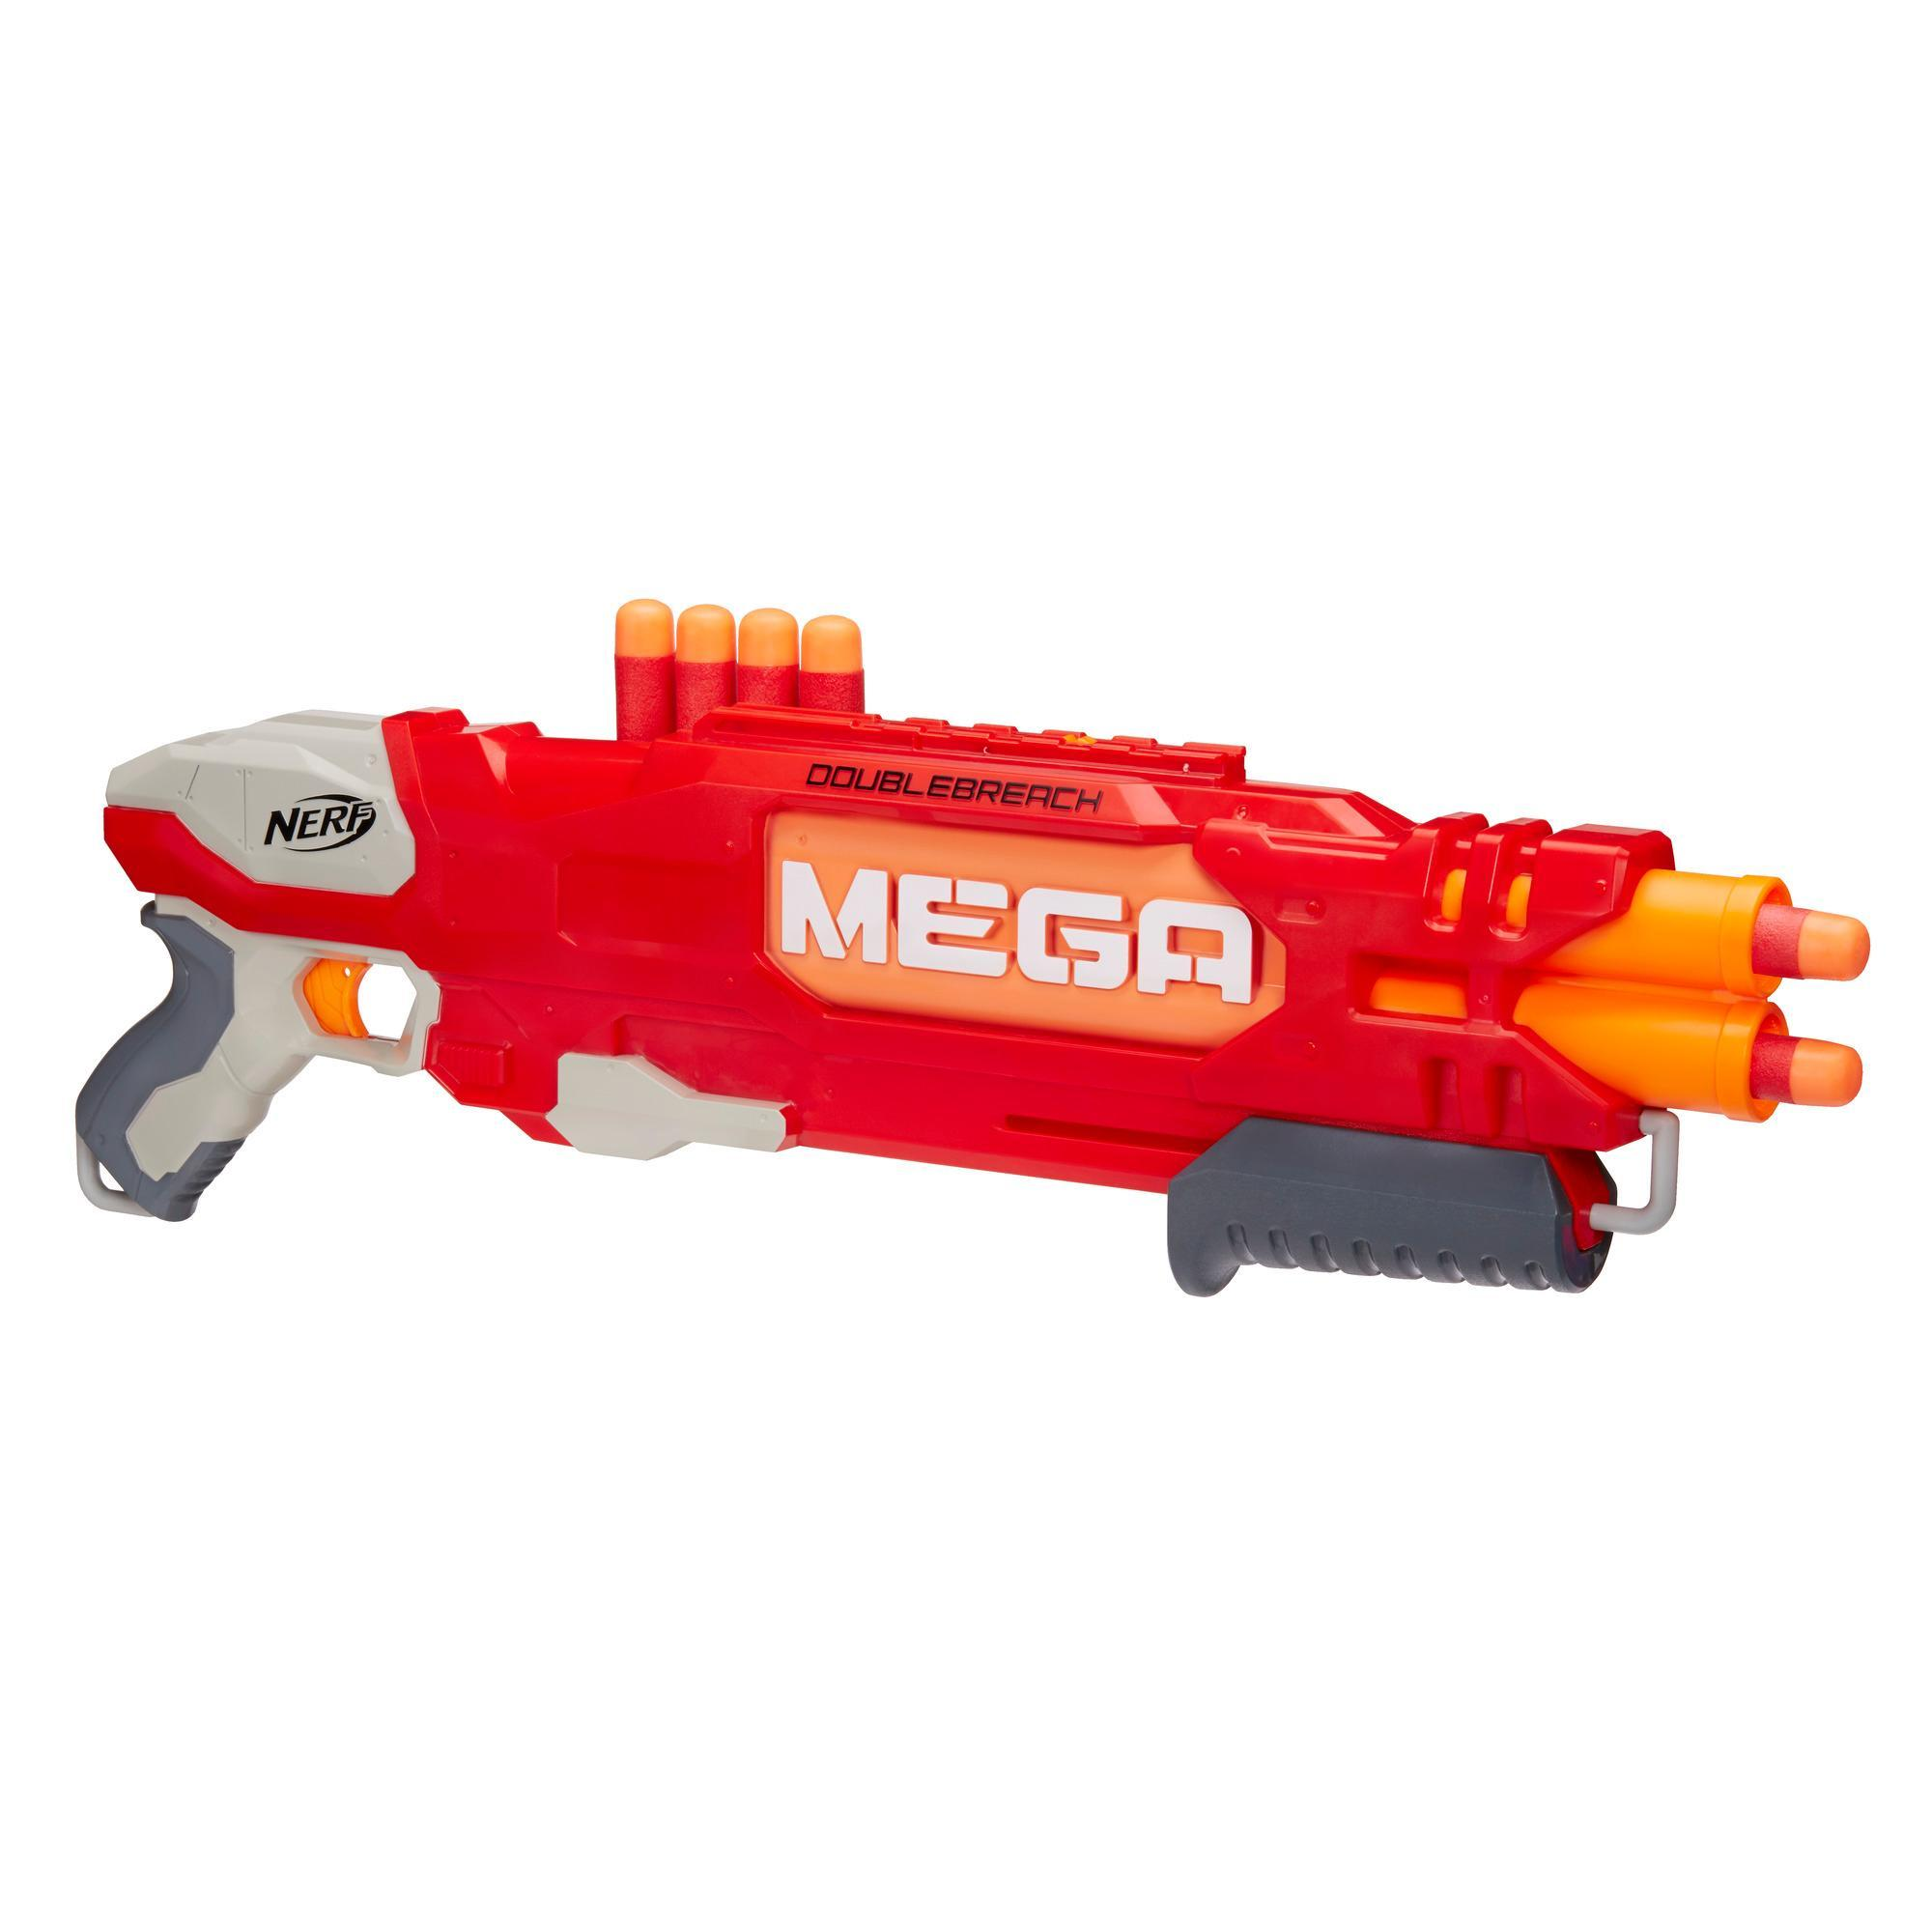 Buy Nerf Double Breach Blaster Online at Low Prices in India - Amazon.in